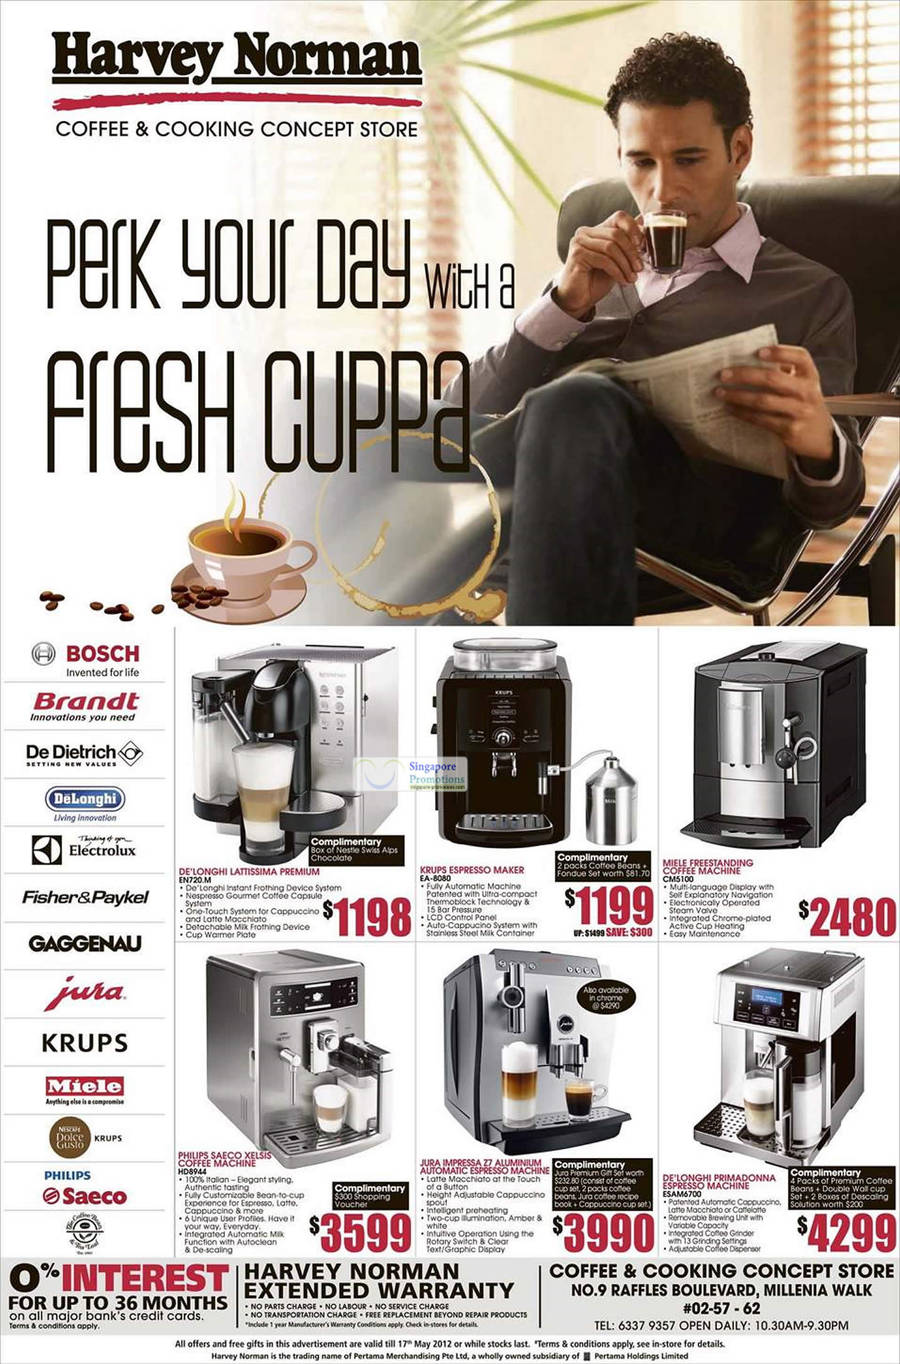 DE LONGHI LATTISSIMA PREMIUM EN720M, KRUPS ESPRESSO MAKER EA-8080, Philips Saeco XELSIS Coffee Machine HD8944, DELONGHI PRIMADONNA ESPRESSO MACHINE ESAM6700, MIELE FREESTANDING COFFEE MACHINE CM5100